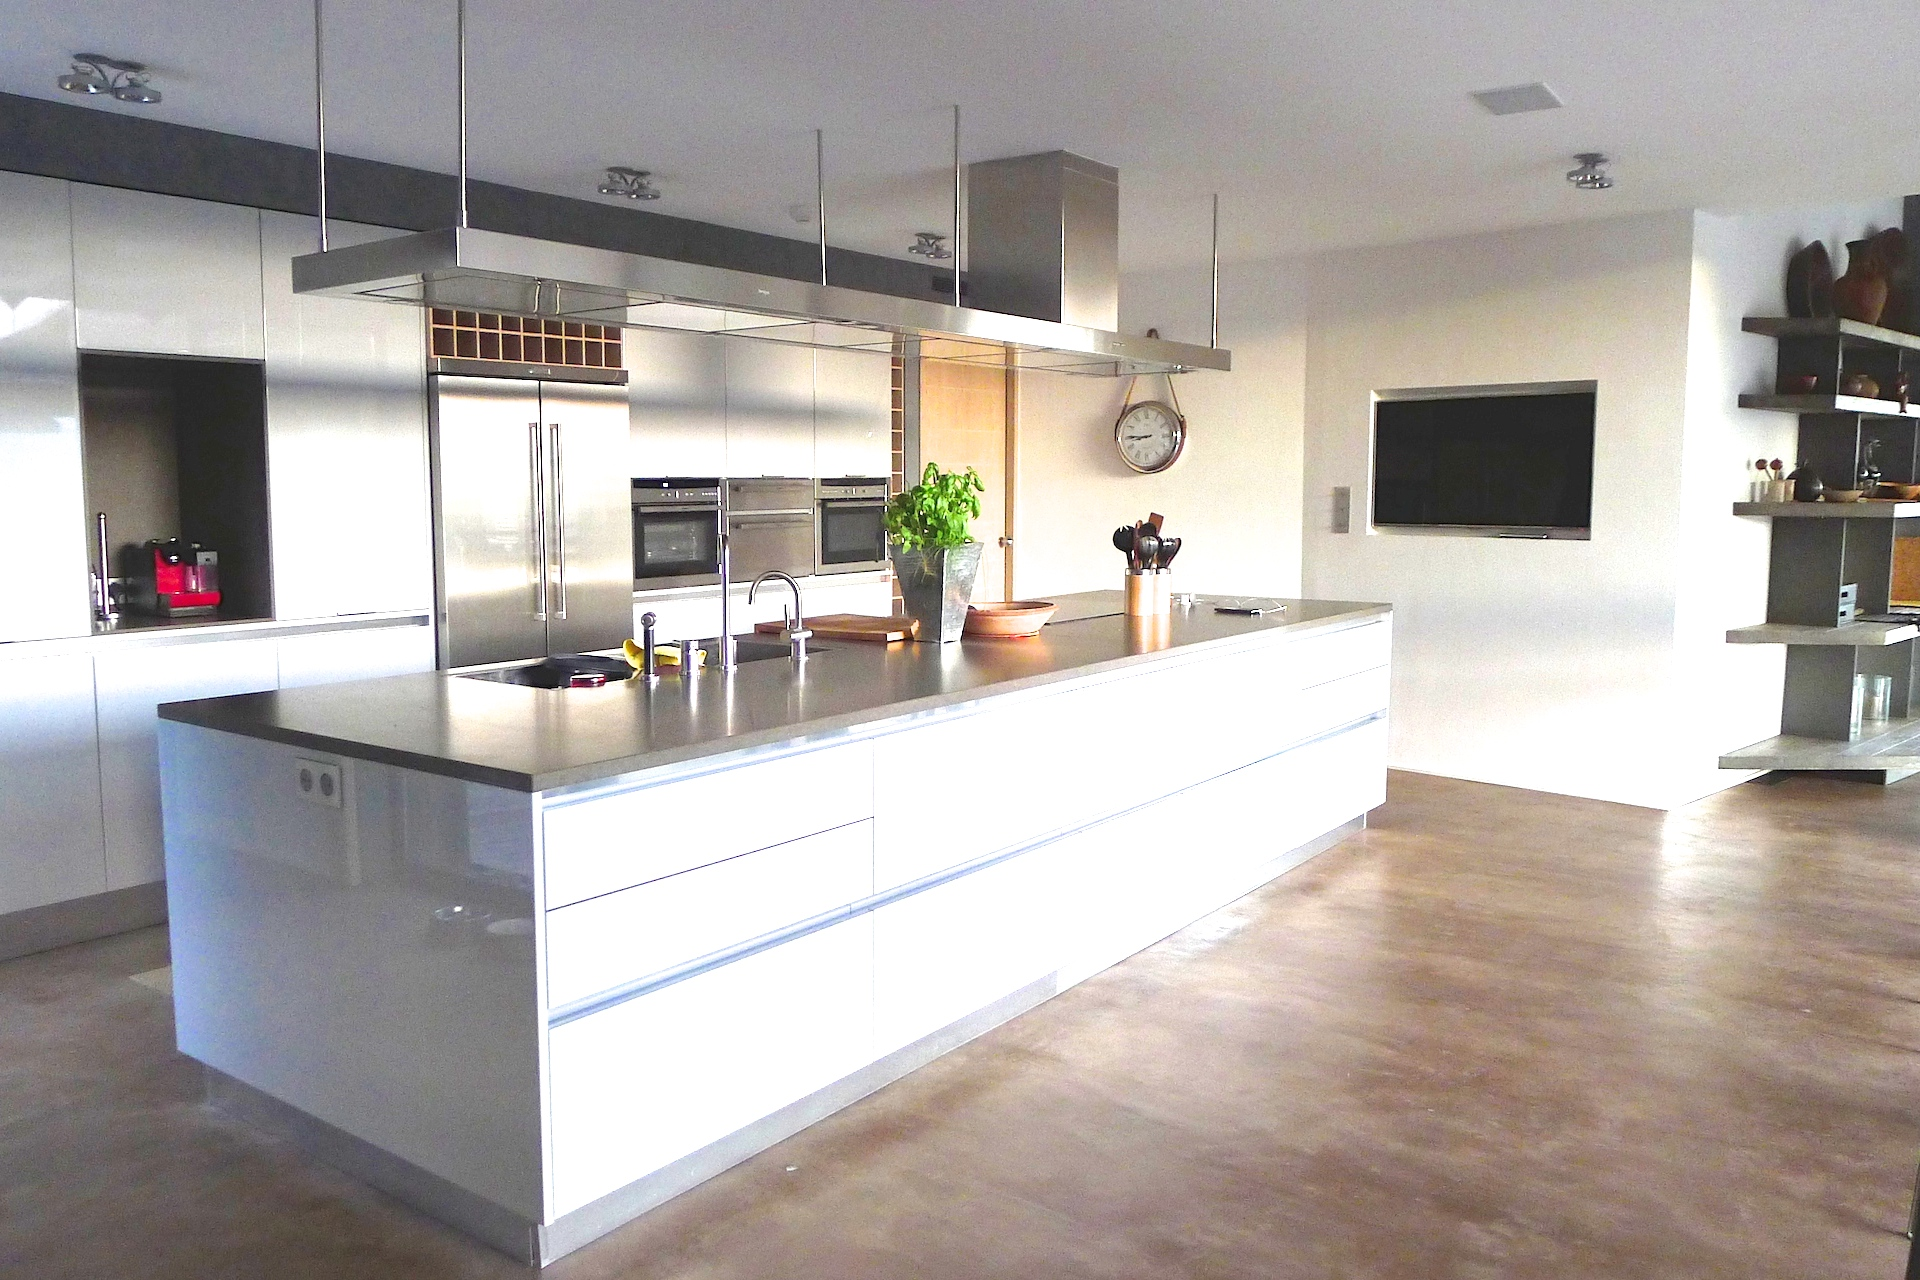 One of the kitchens in the Villa Grimaud vacation rental offered by Paris Perfect